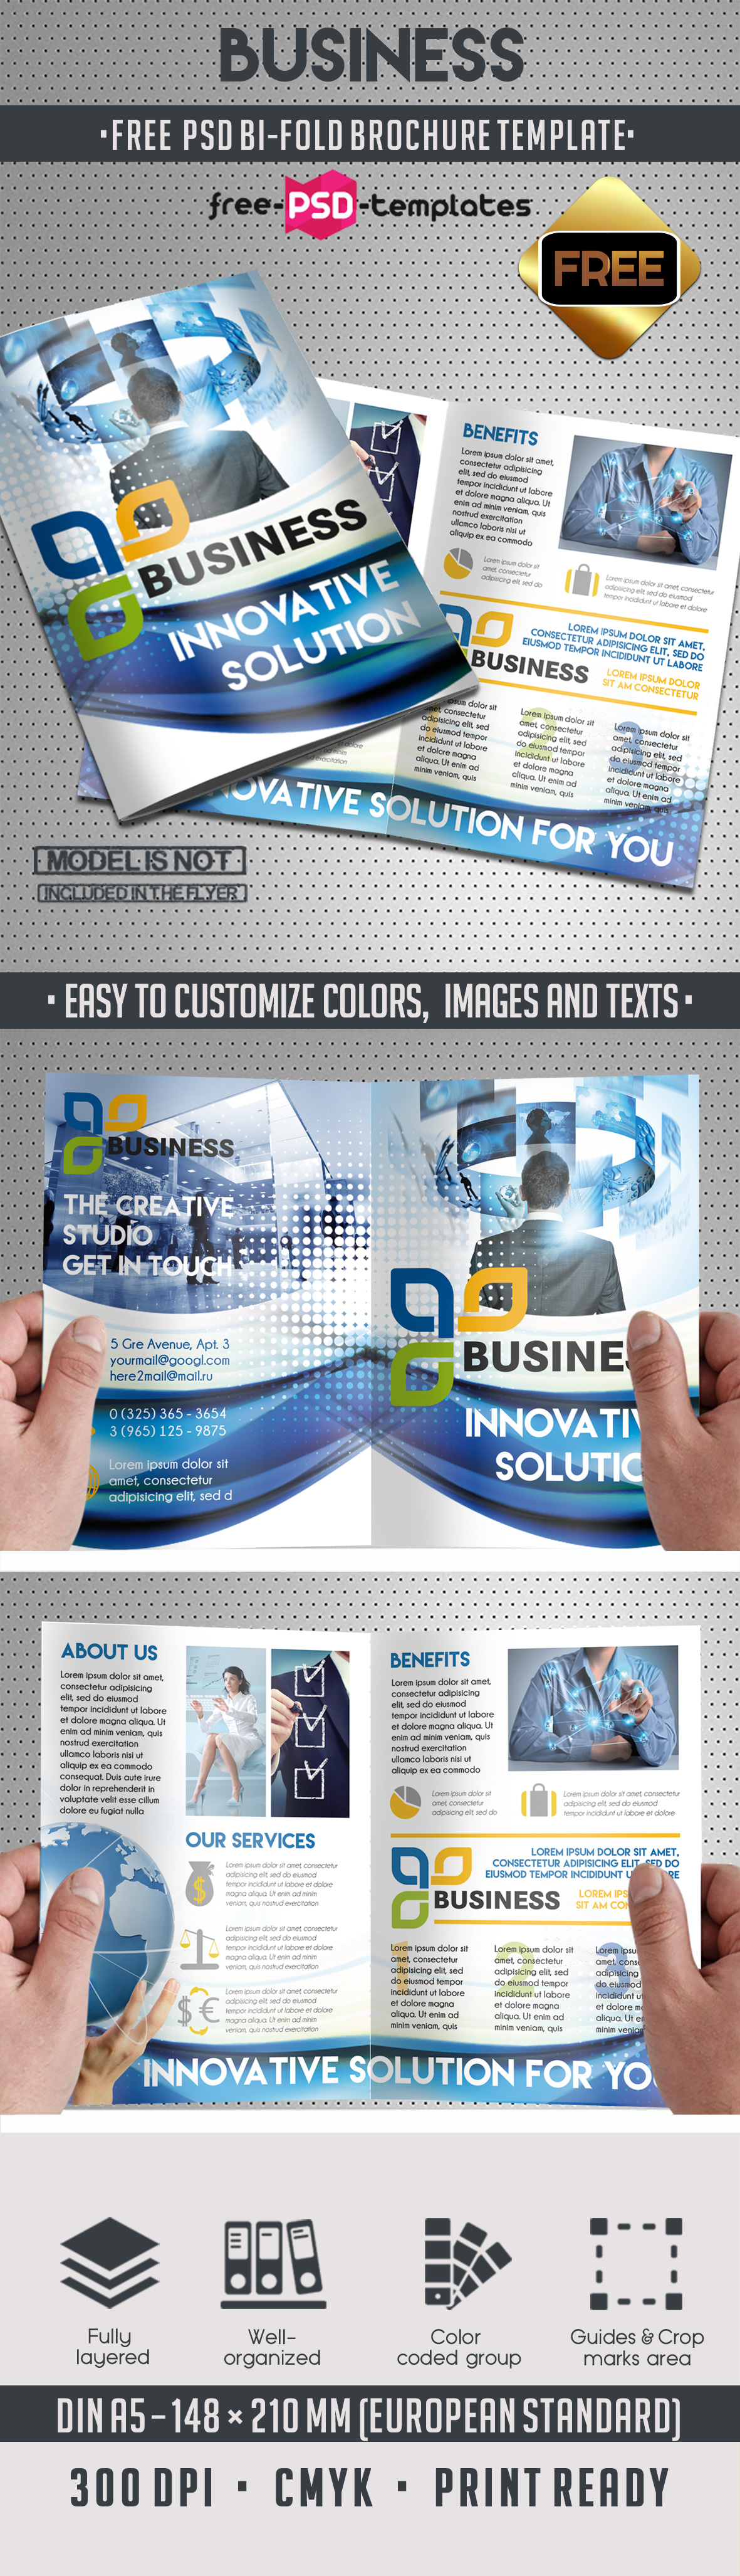 Bigpreview_free-corporate-business-psd-bi-fold-brochure